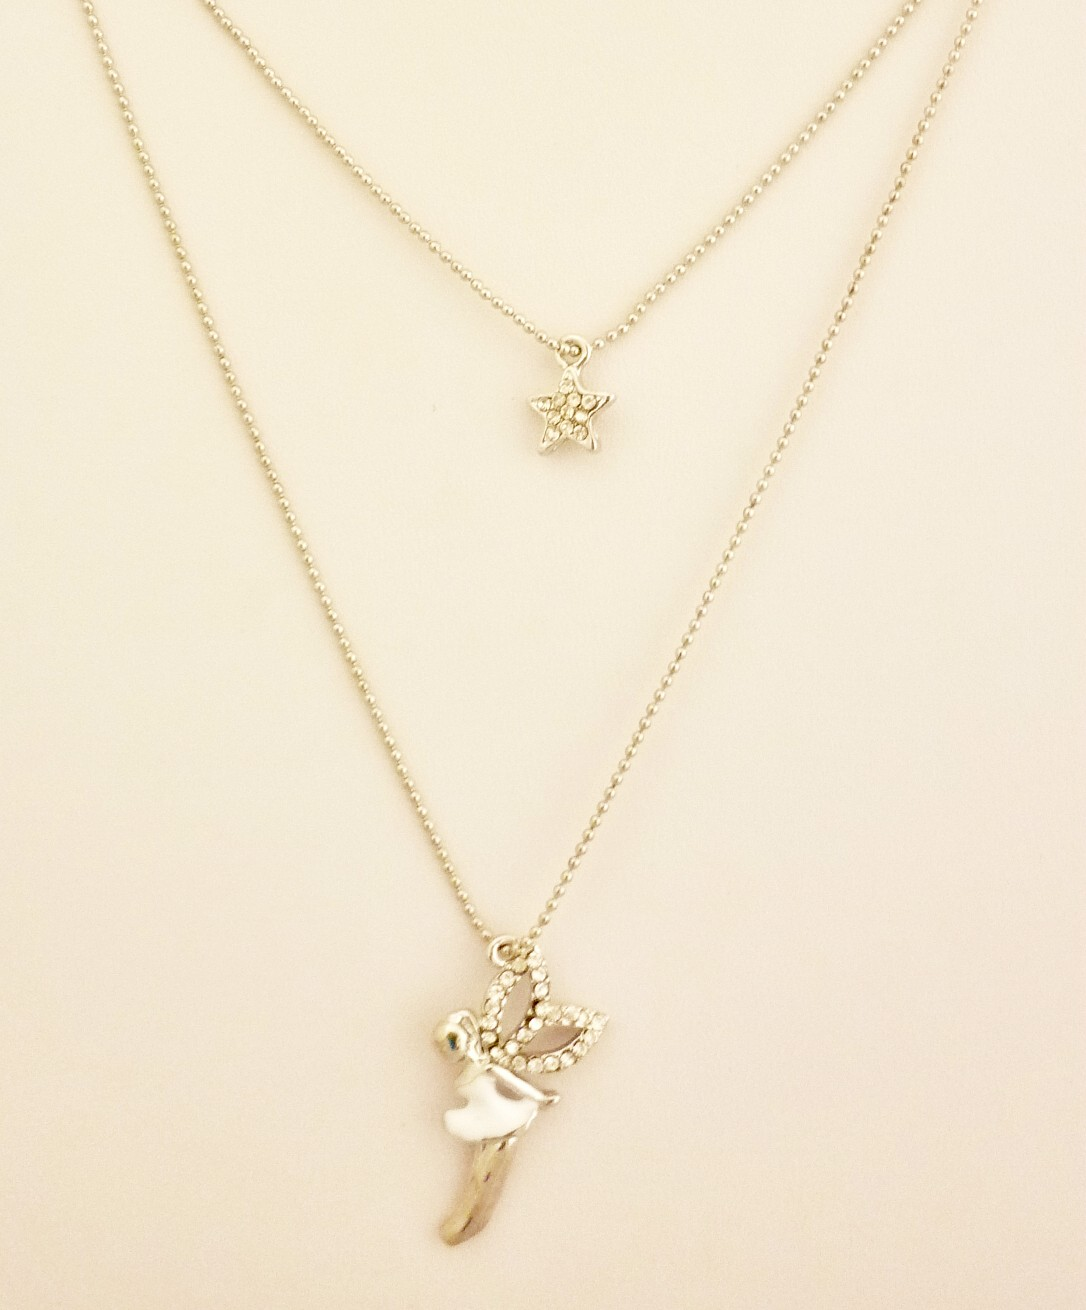 Fairy and star necklace